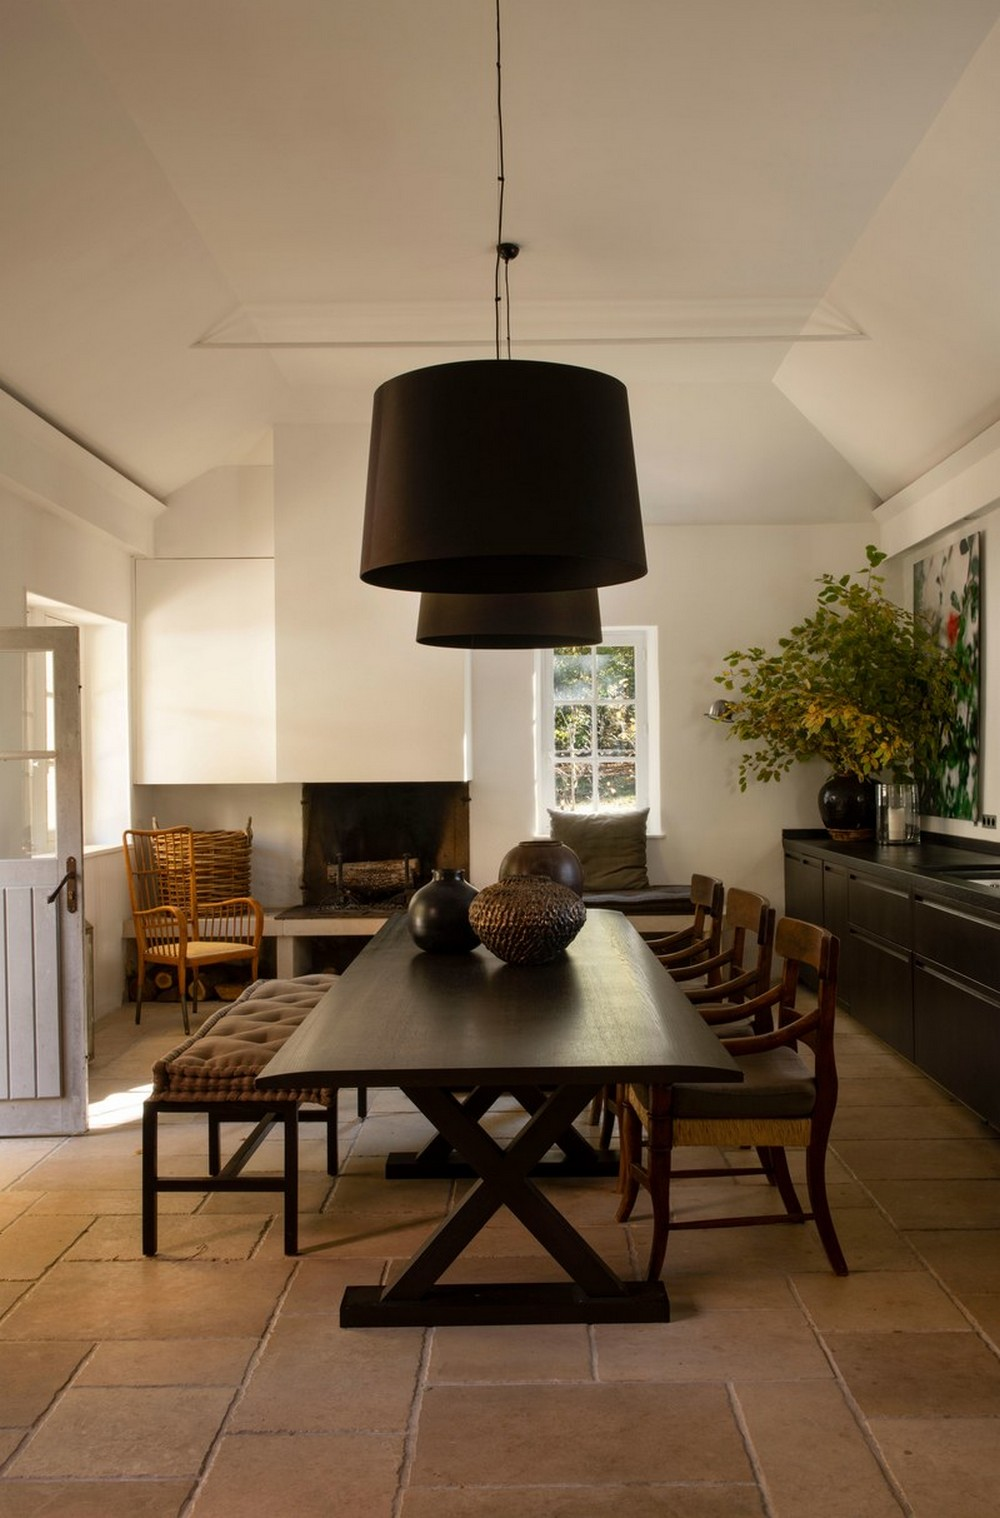 Architectural Digest Architectural Digest Shows A Unique Country Retreat To See In Paris Architectural Digest Shows A Unique Country Retreat To Stay In Paris 2